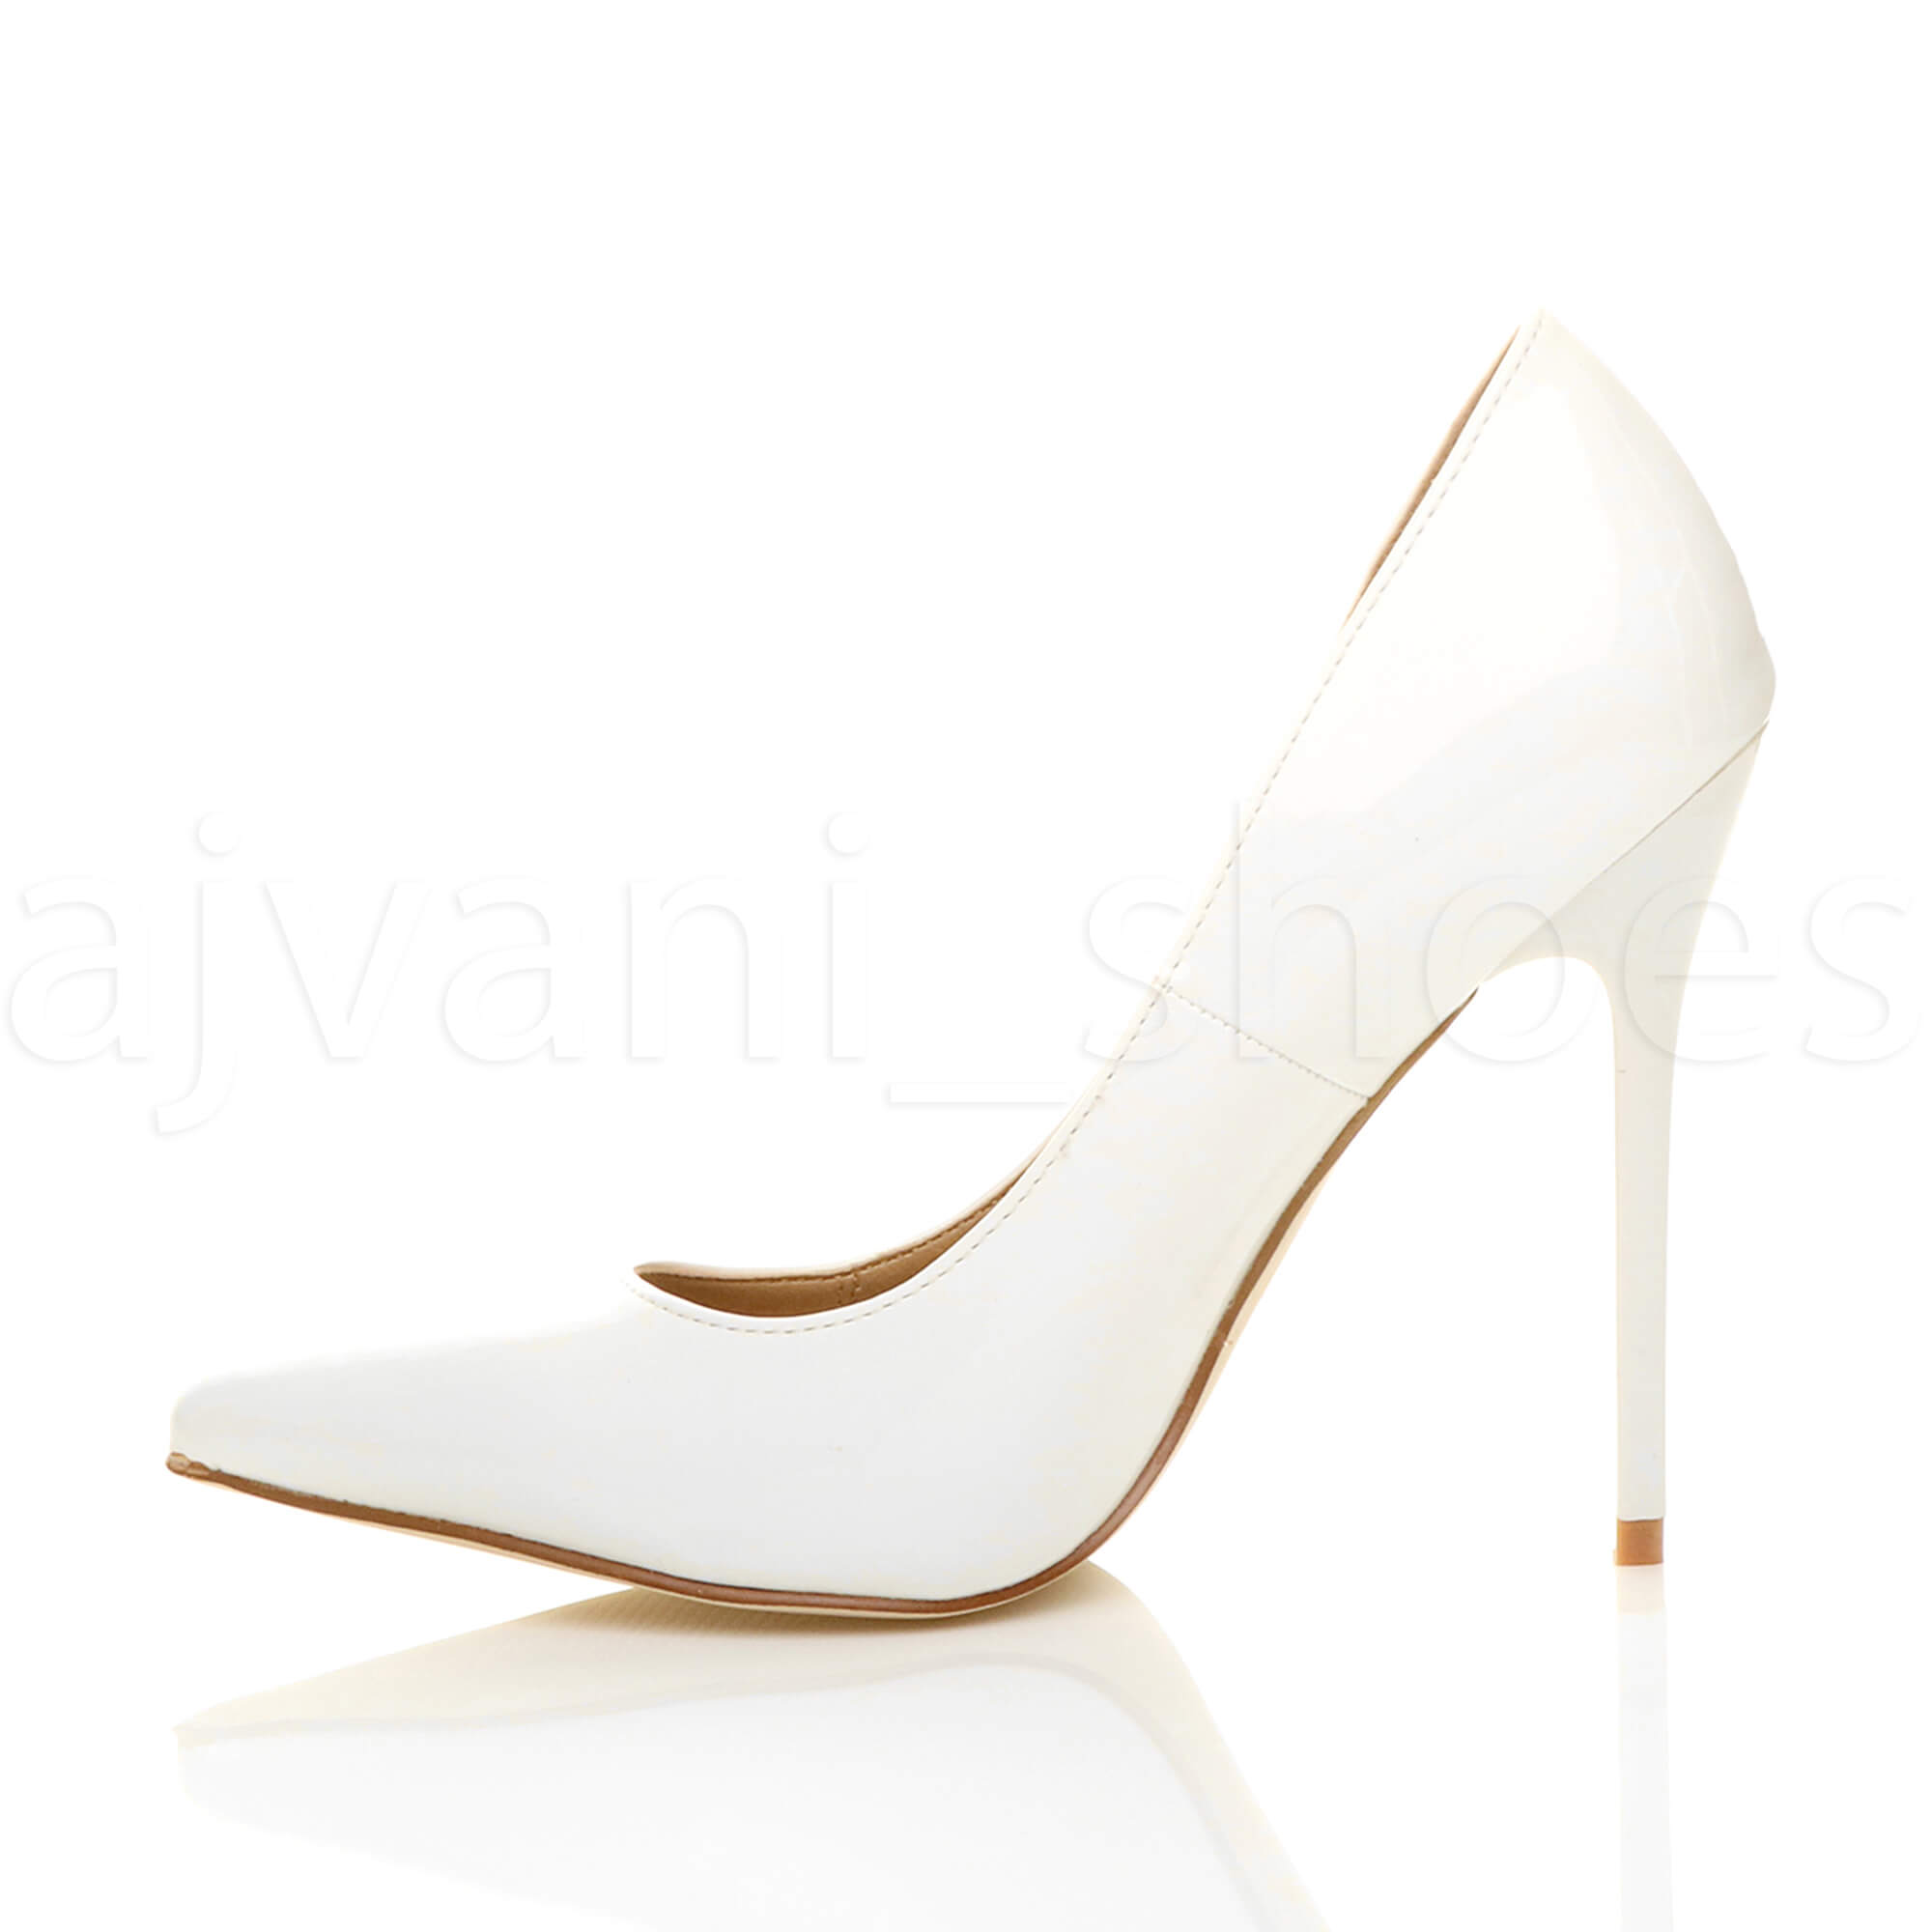 WOMENS-LADIES-HIGH-HEEL-POINTED-CONTRAST-COURT-SMART-PARTY-WORK-SHOES-PUMPS-SIZE thumbnail 249